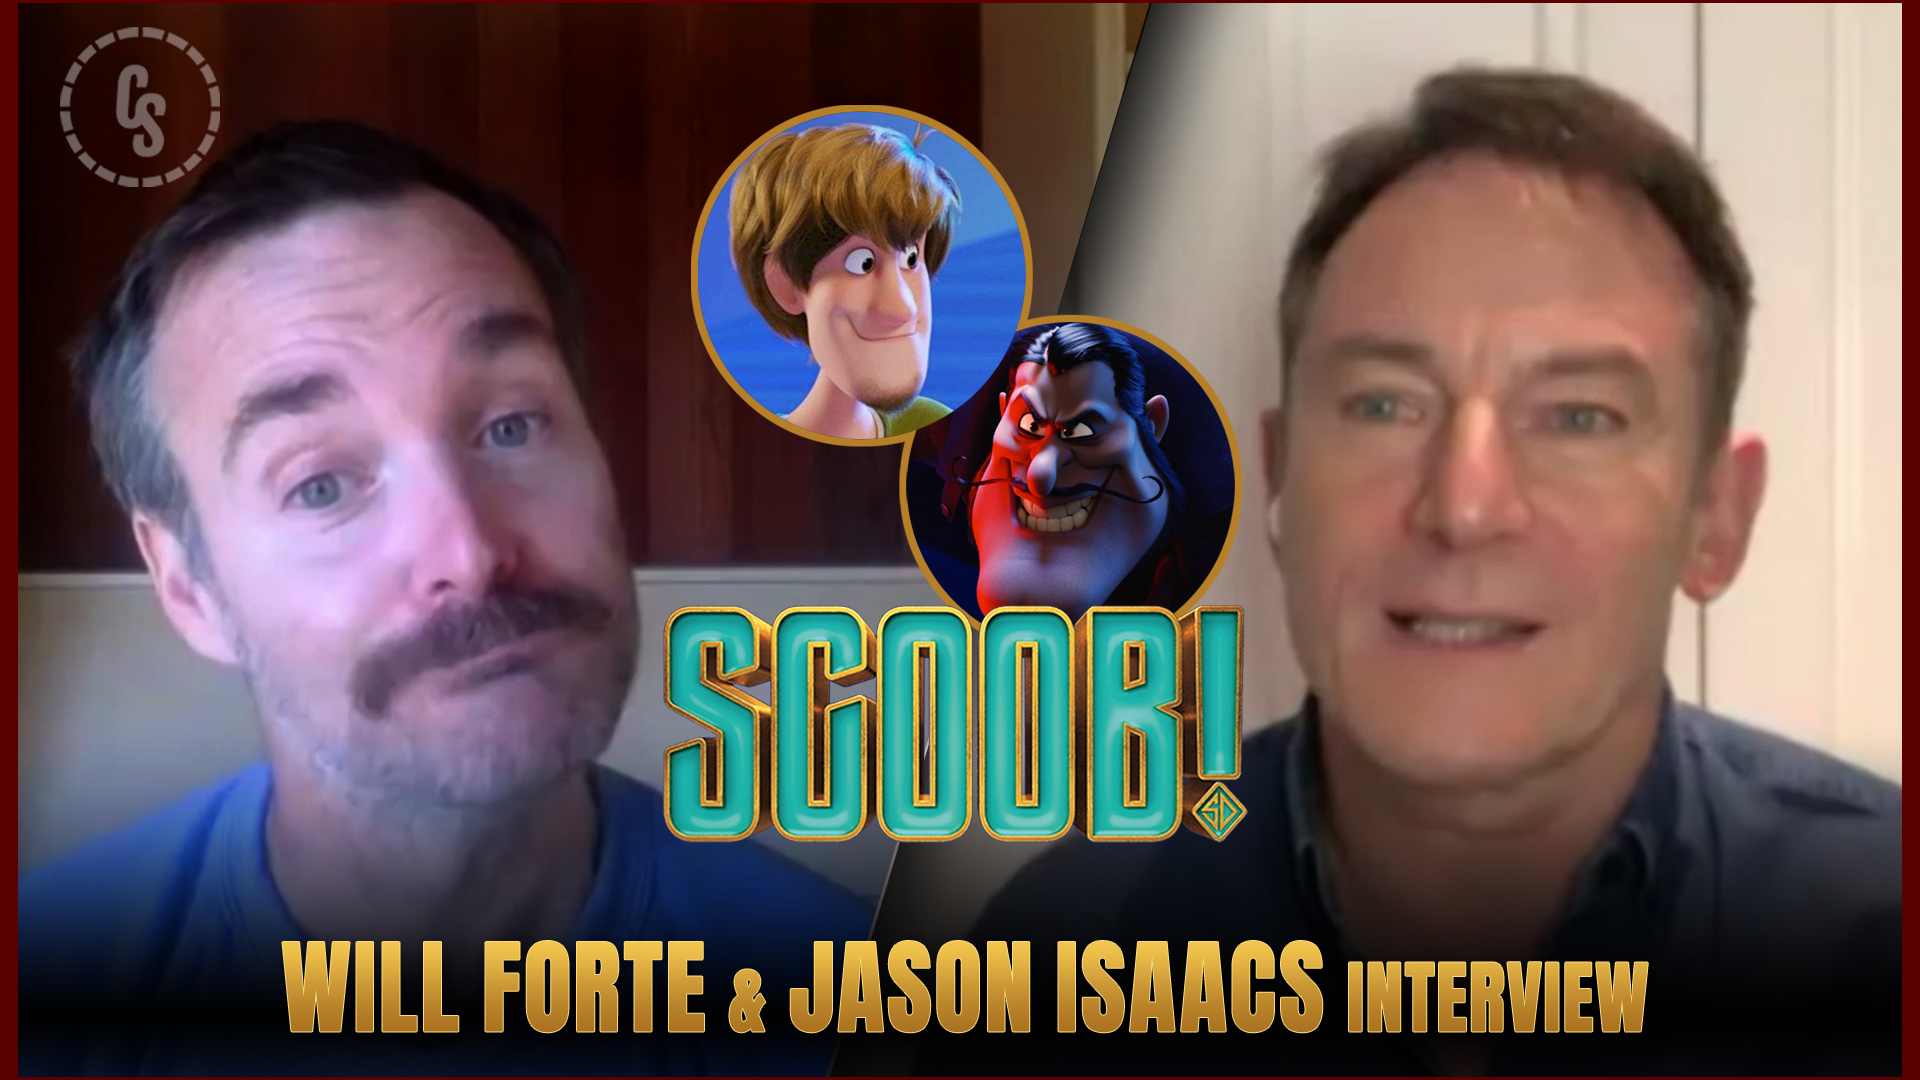 CS Video: Scoob! Interviews With Will Forte & Jason Isaacs